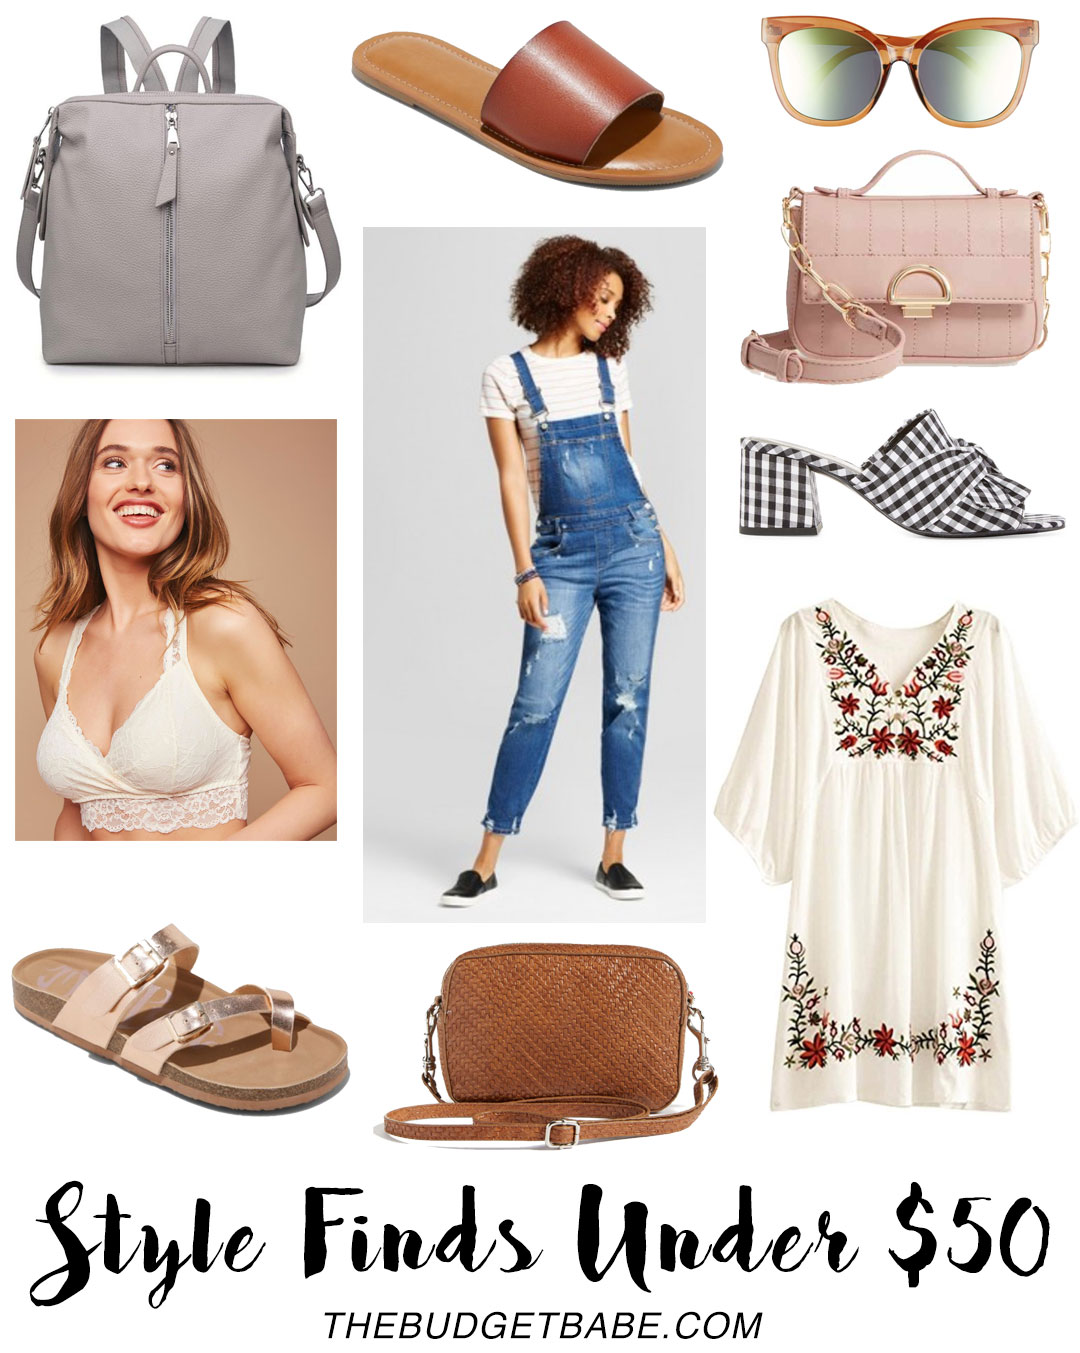 Style Finds Under $50 // Thebudgetbabe.com